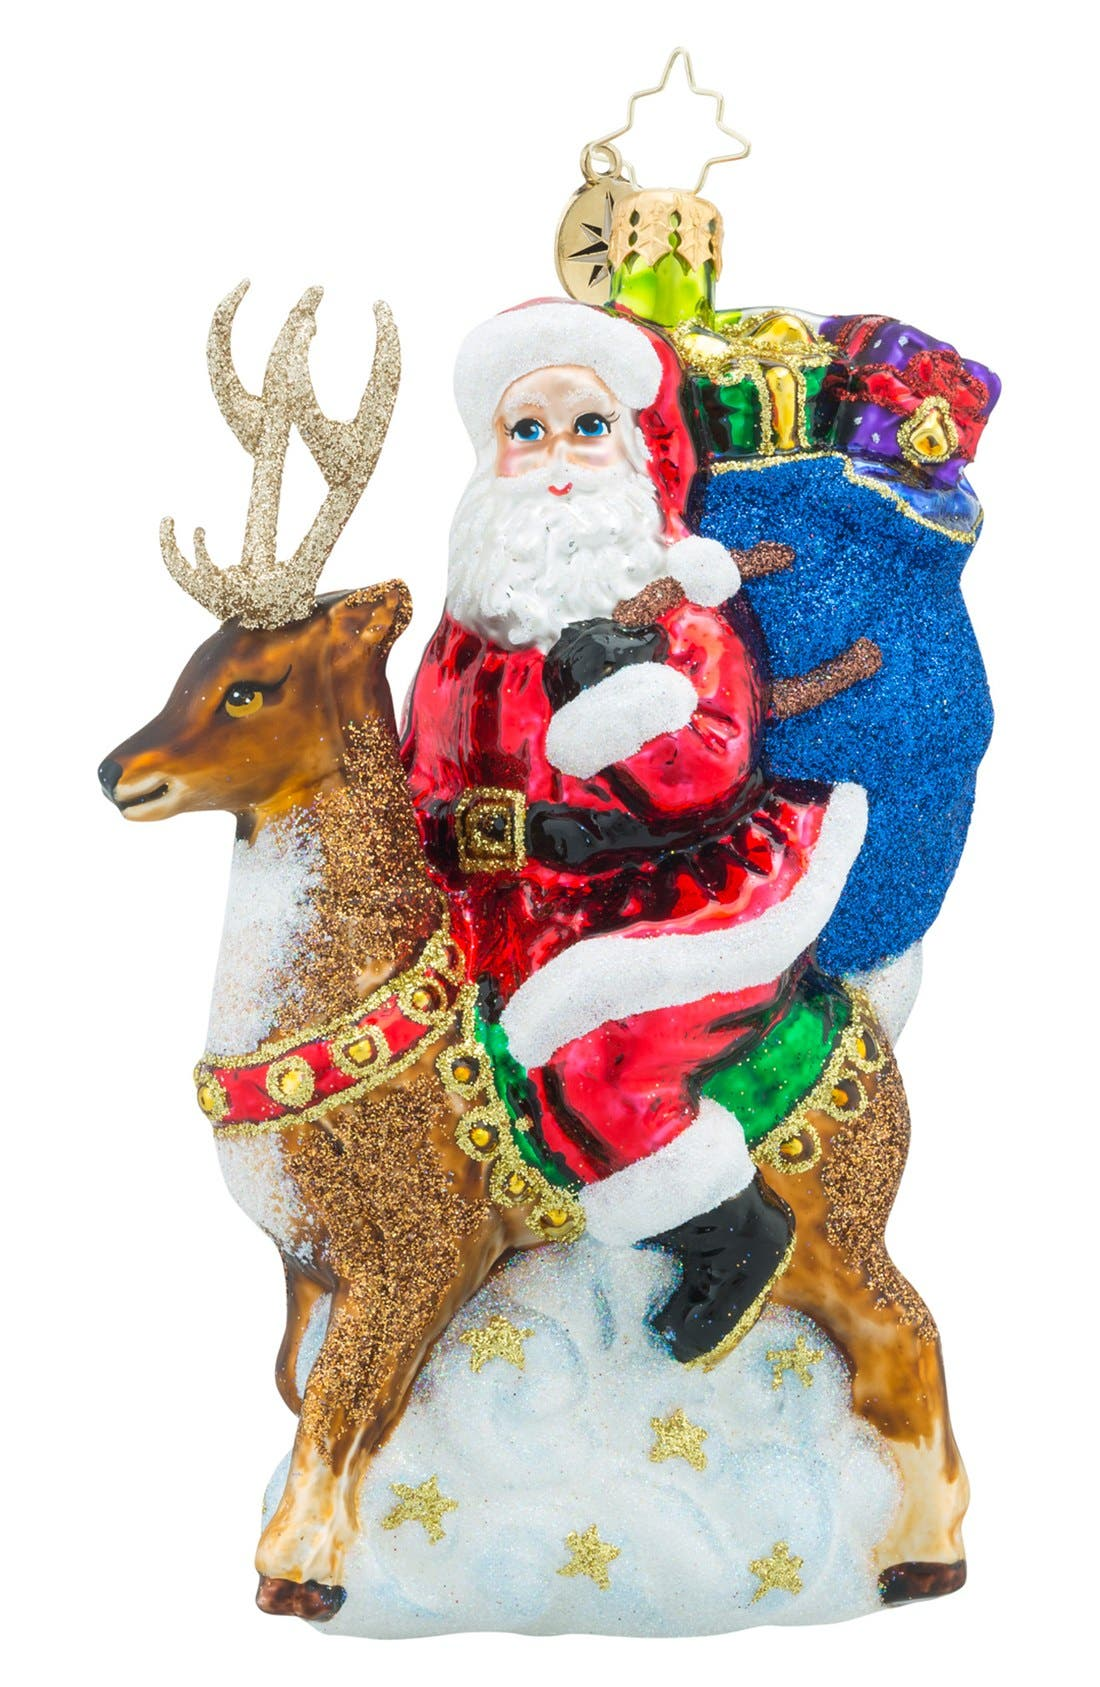 Main Image - Christopher Radko 'Love My Ride' Santa & Reindeer Ornament